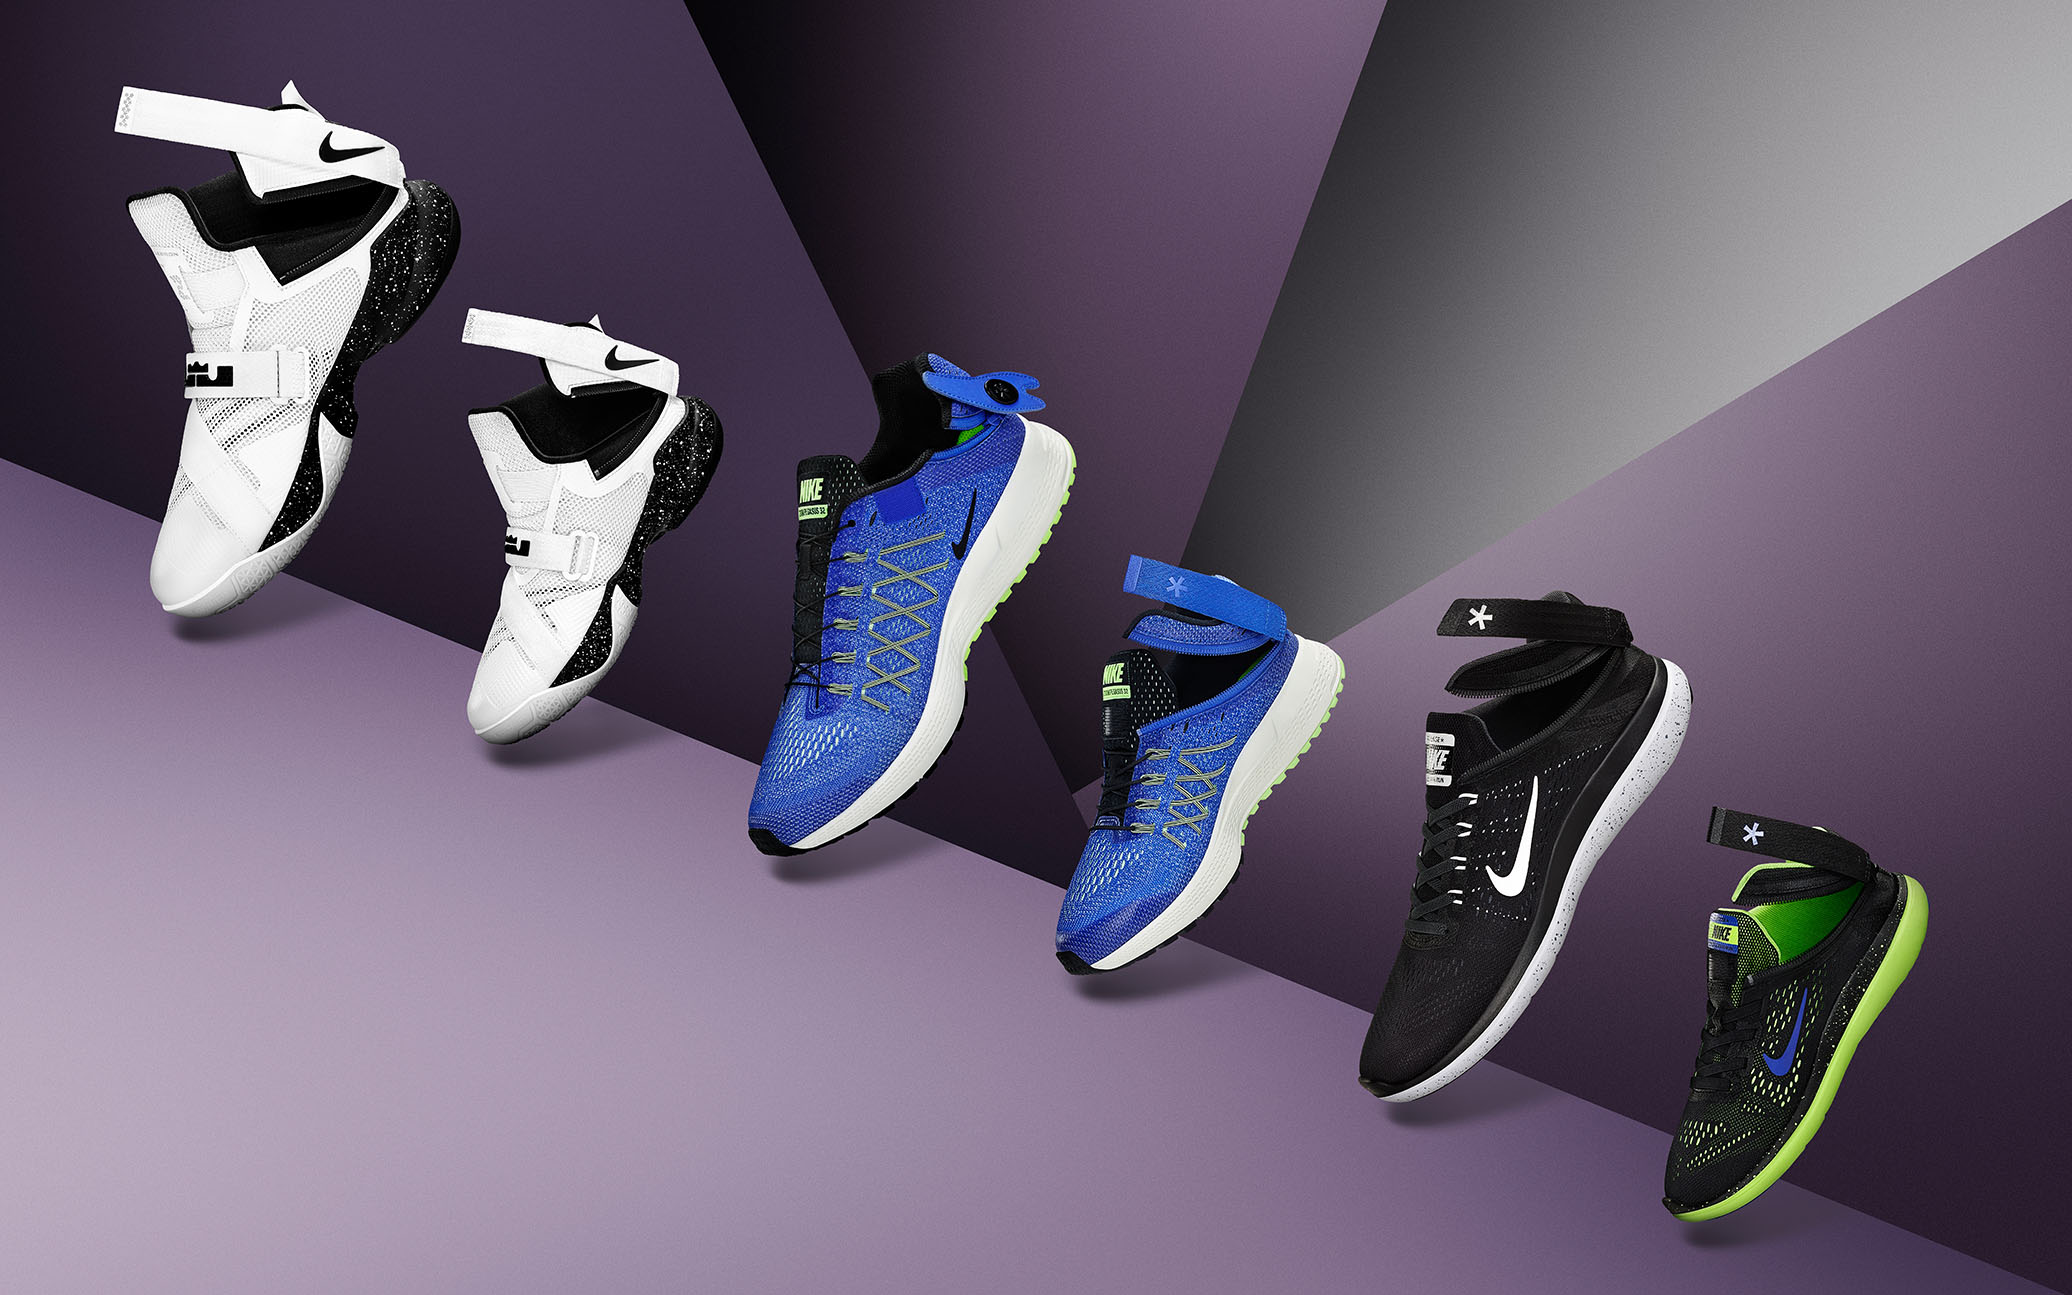 Nike Expands Shoe Line For People With Special Needs